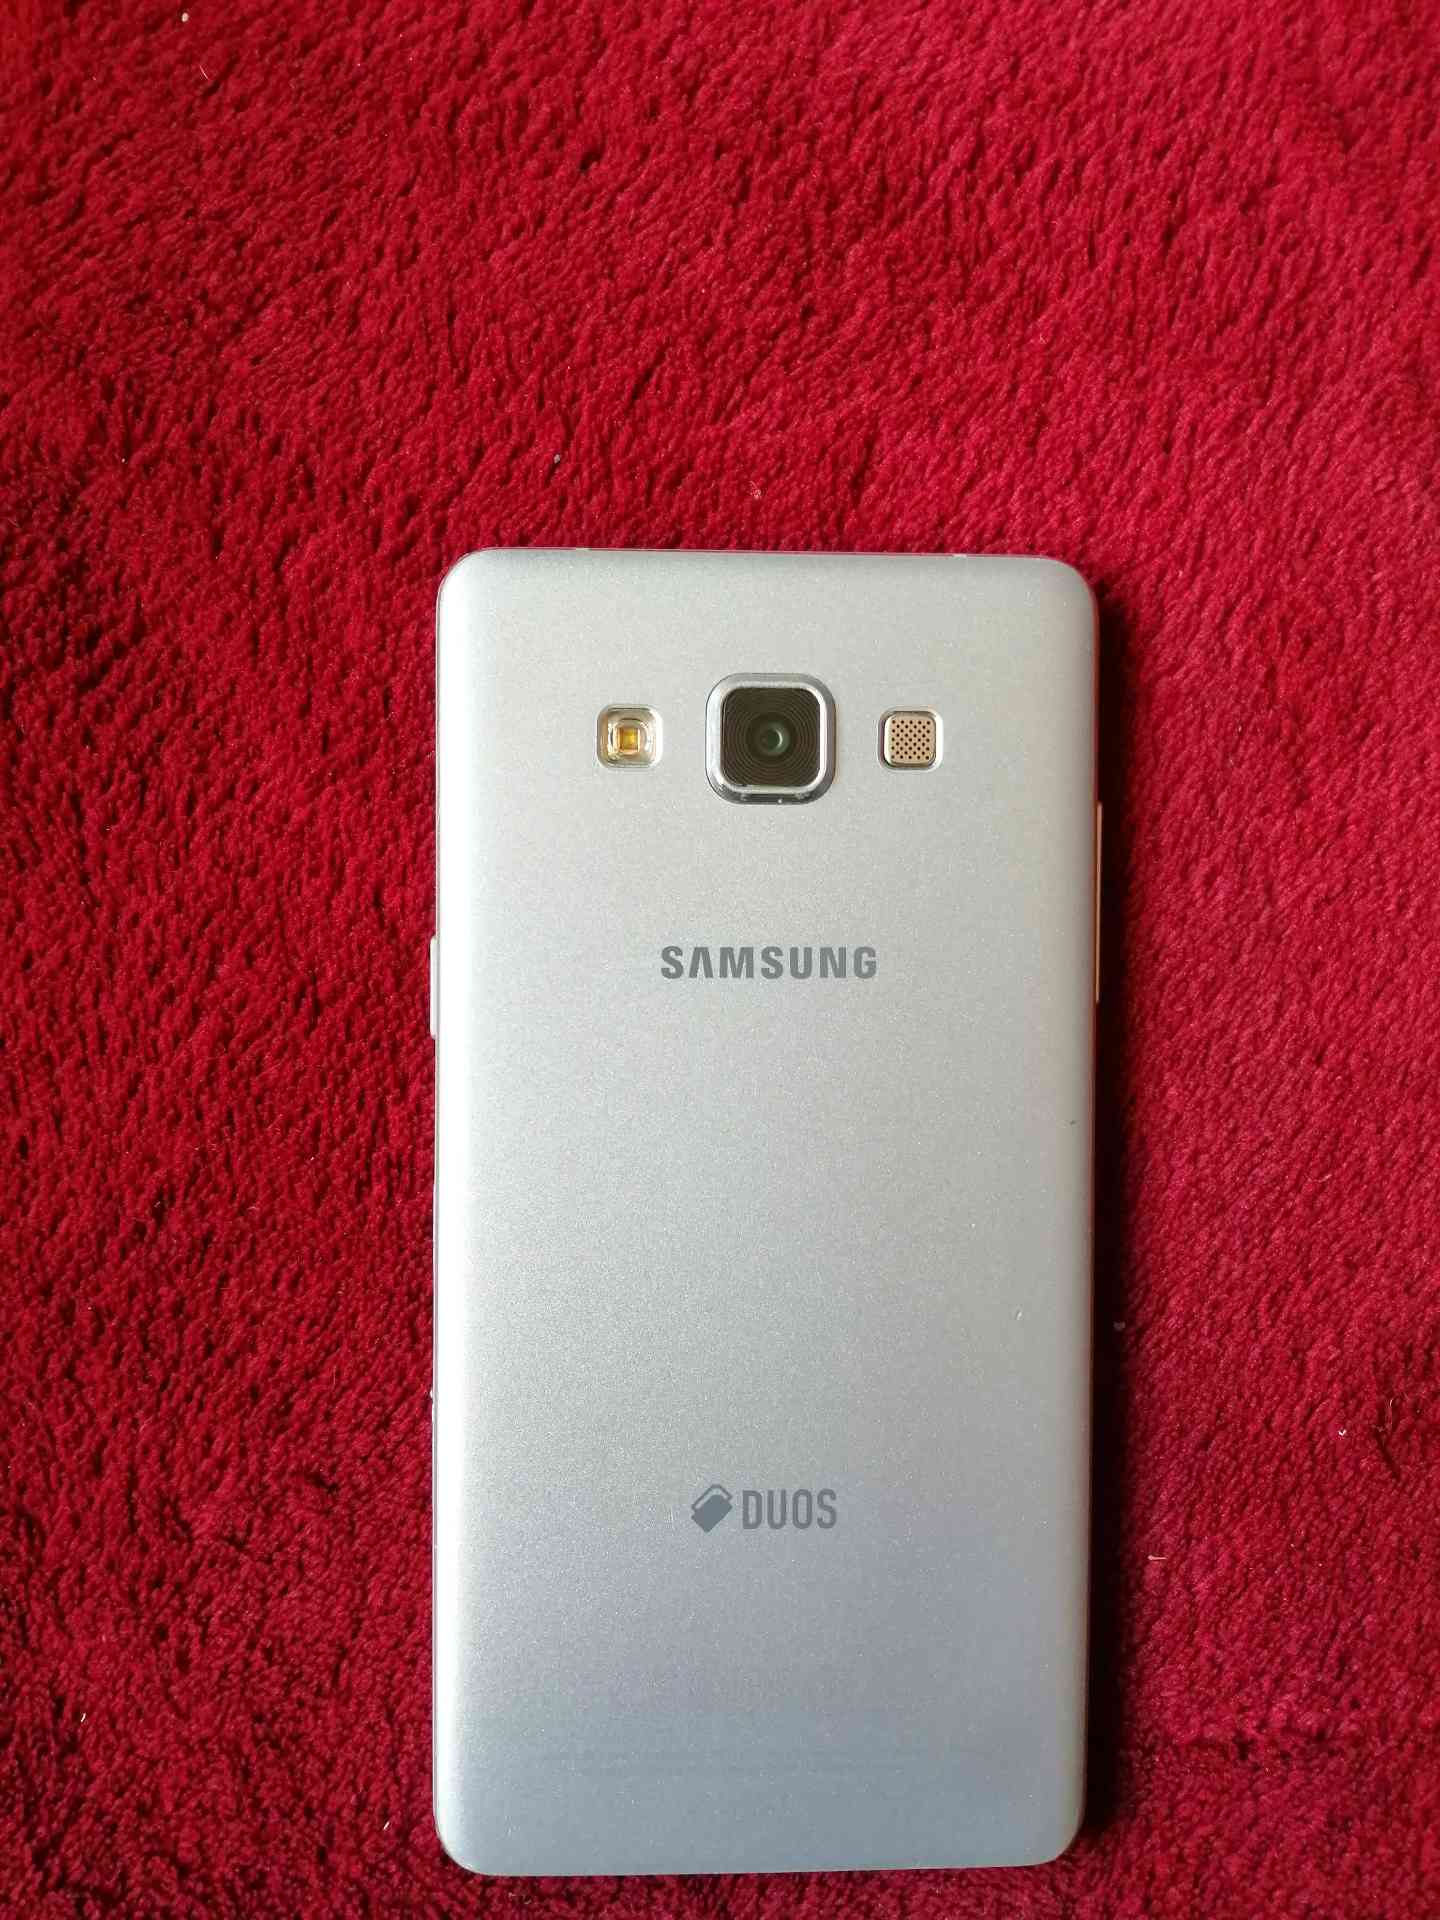 Galaxy note 9 for sale-  samsung a5 2015 4g لا...